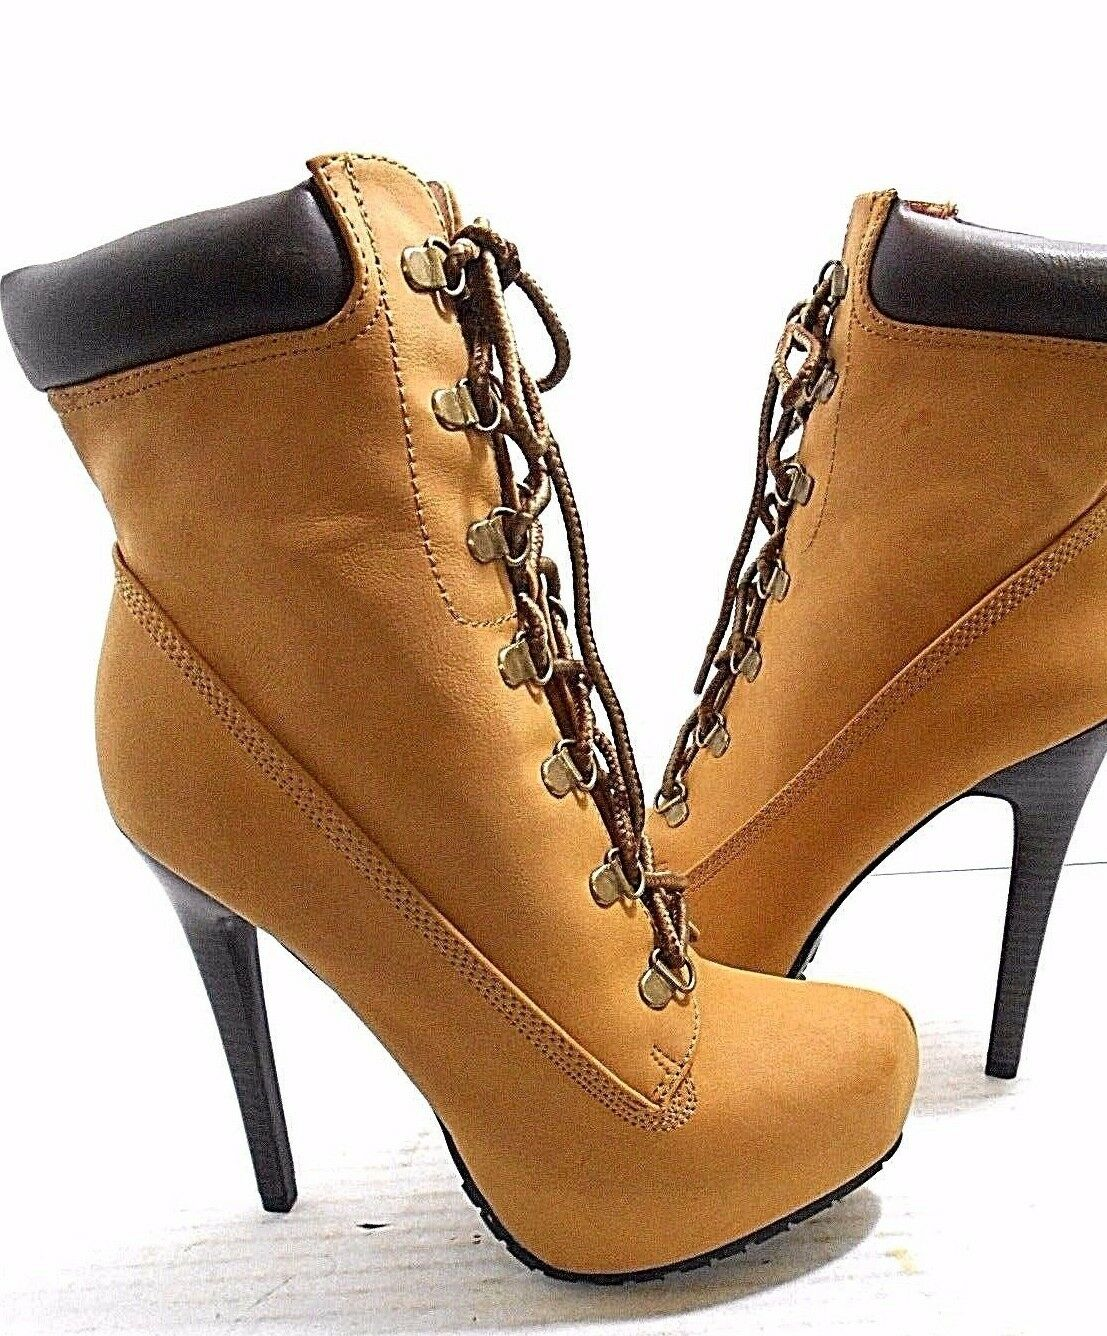 Just Fab- Letha Stiletto Heels- Lace Up Stiefel -TAN WOMEN'S- USA SIZE  8.5- NEU